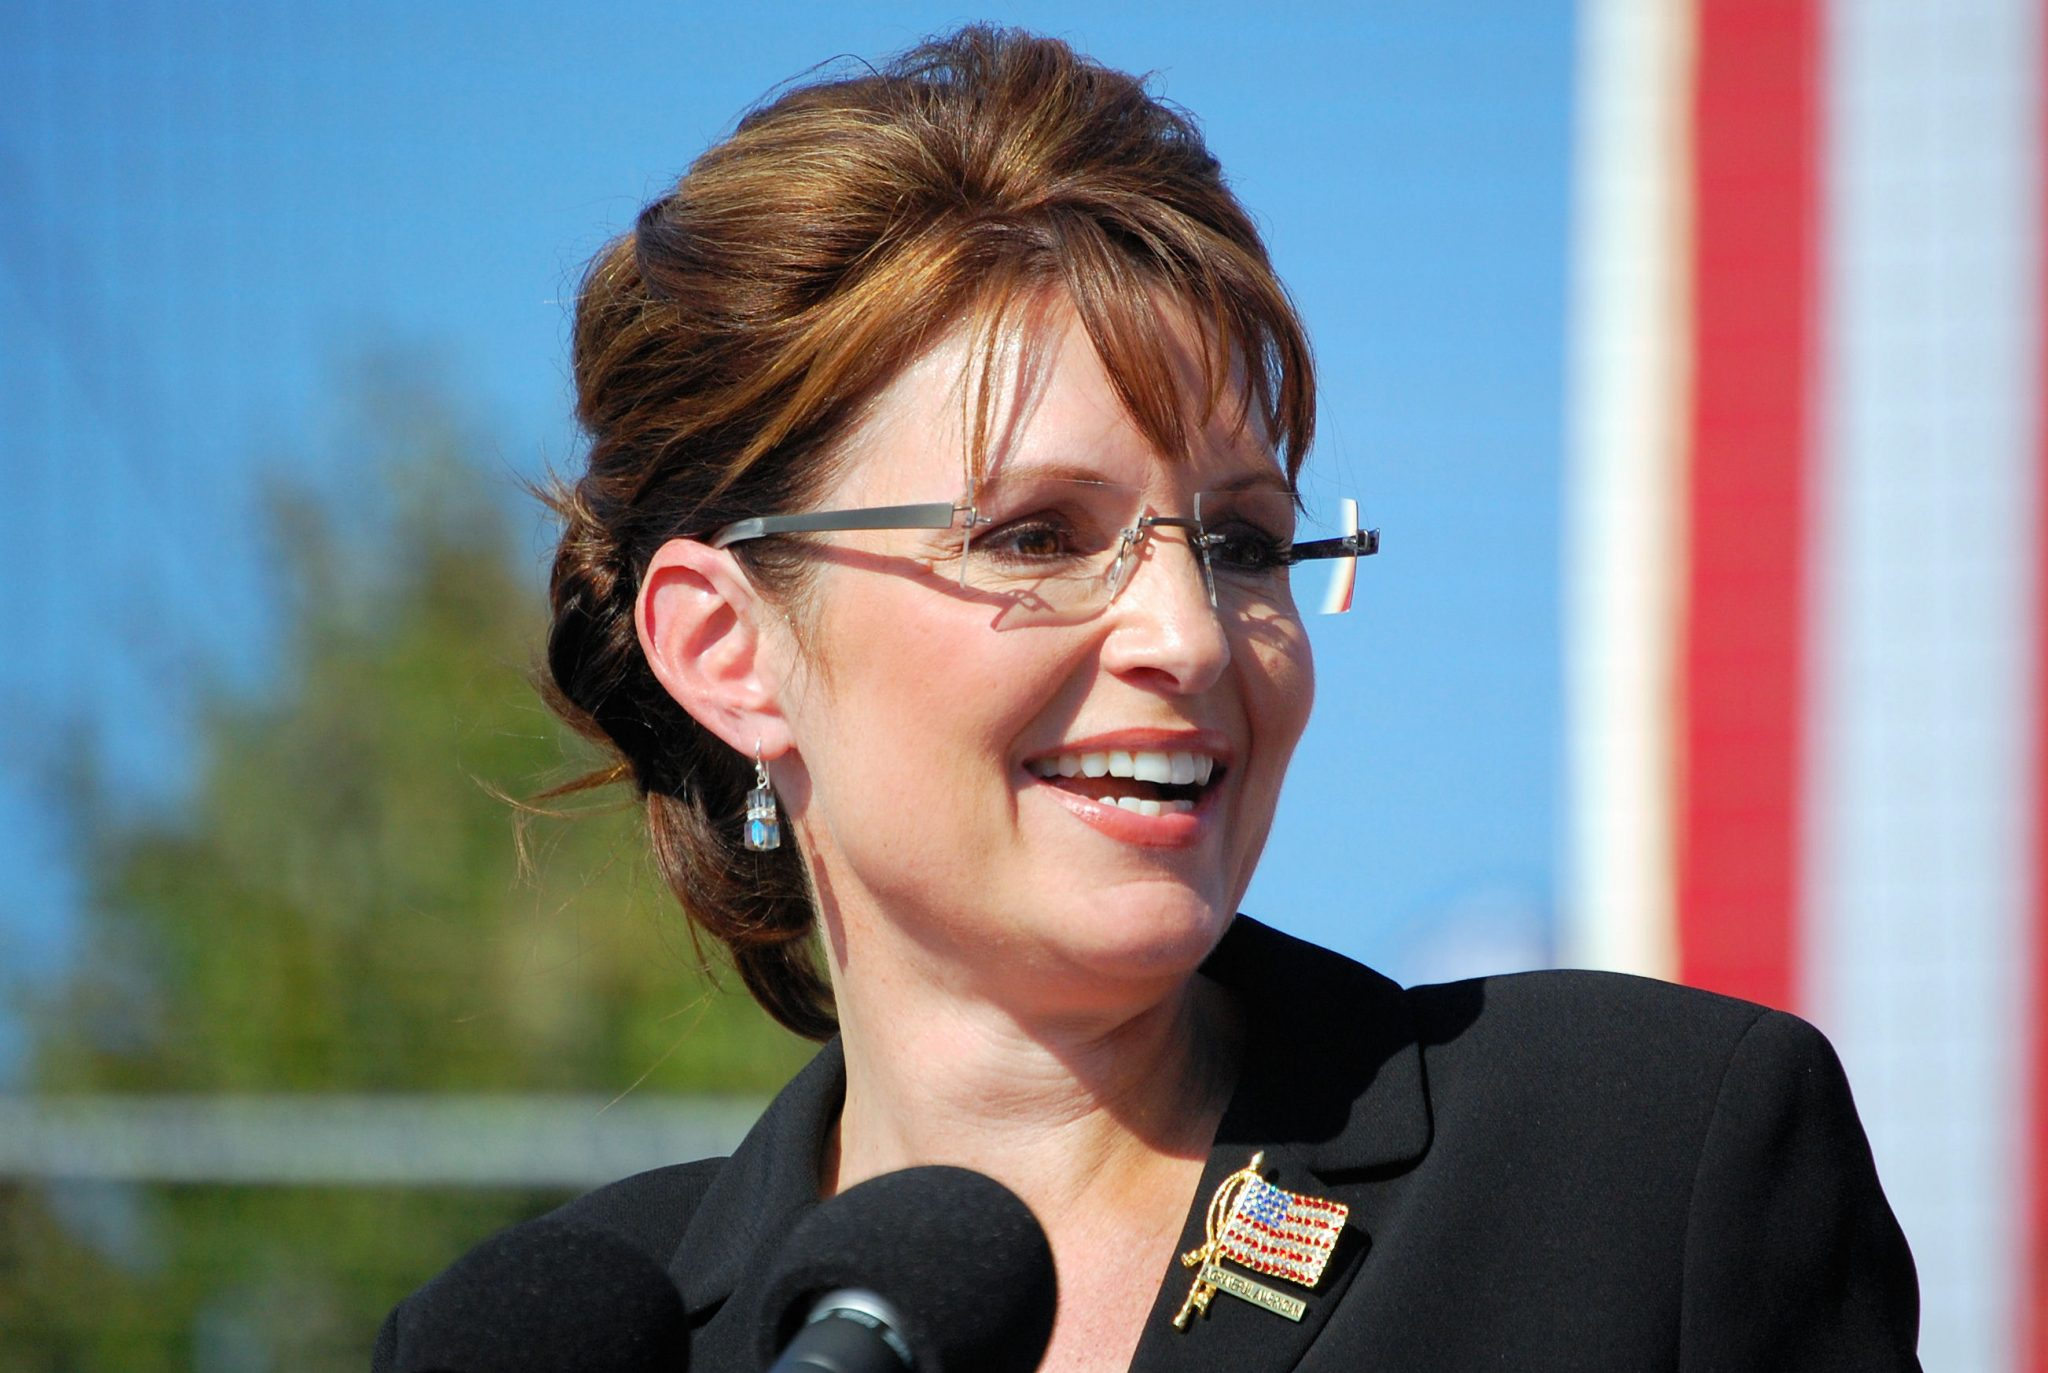 Donald Trump wants to hire Sarah Palin in the US administration - The American Bazaar